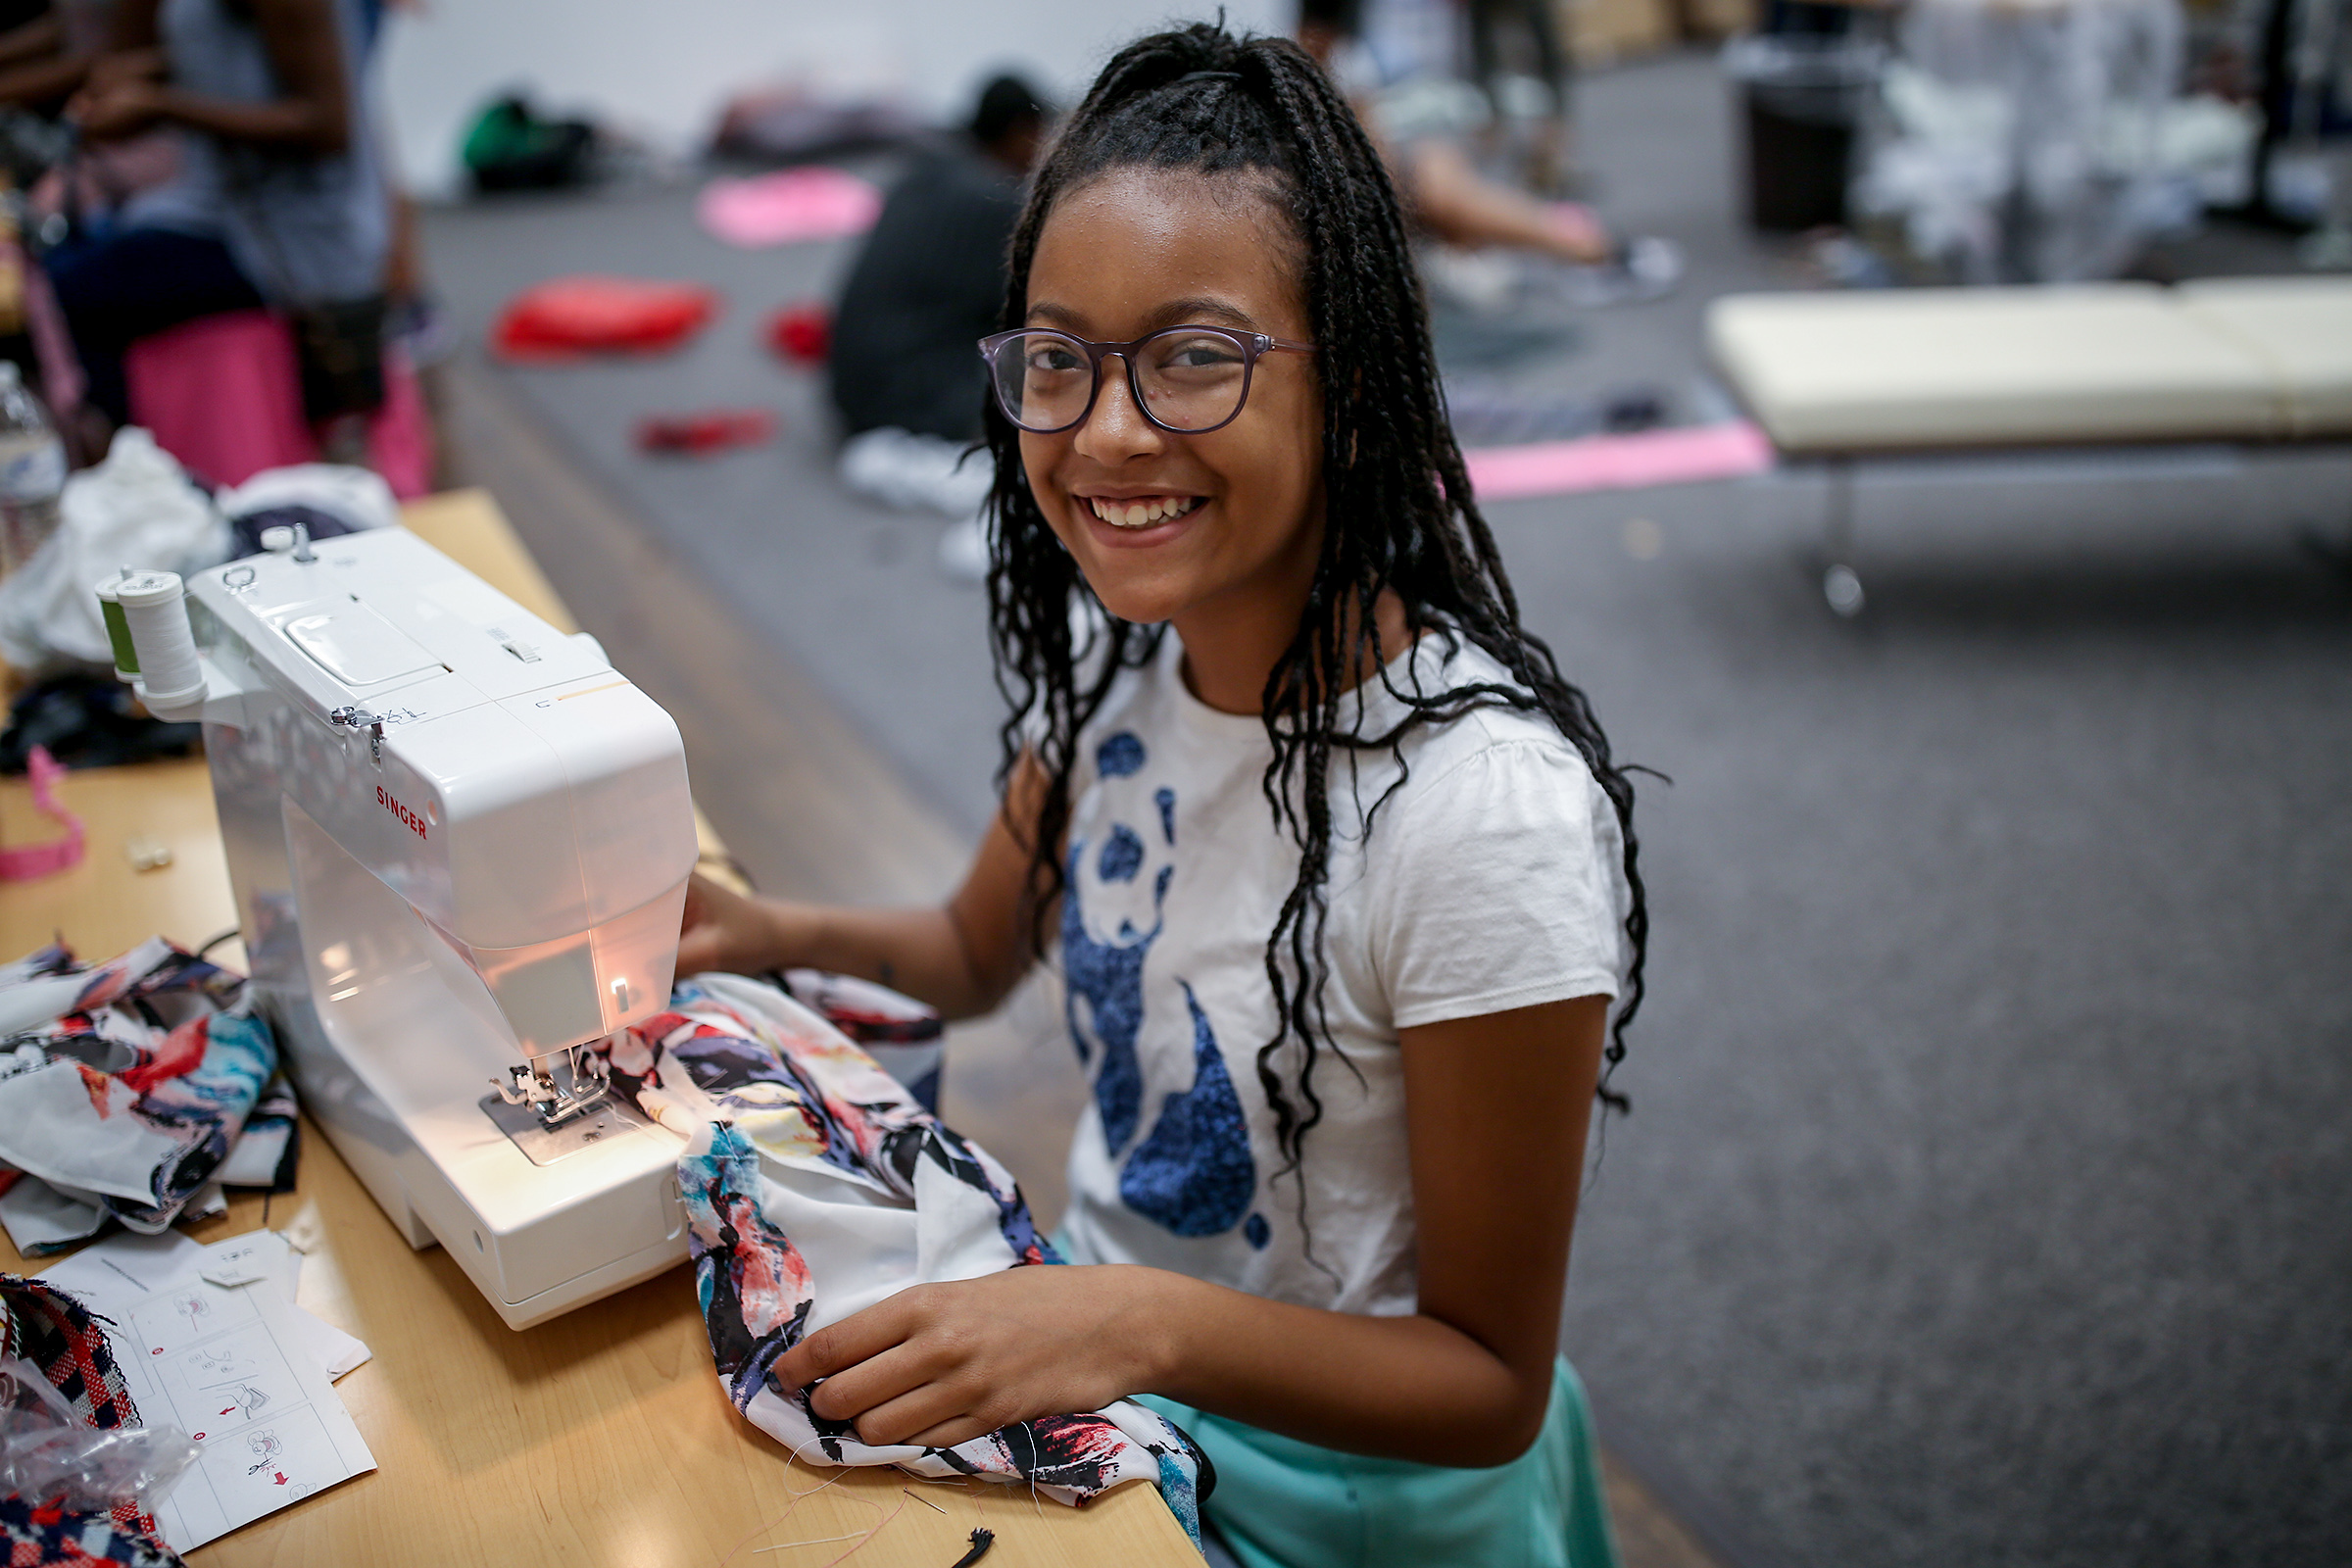 """A camper is all smiles as she learns how to use a sewing machine at the """"Say it isn't so, I will learn how to sew"""" summer camp at JSU led by Shonda McCarthy, director of JSU art galleries, and Kristen Martin, an entrepreneur and 2018 graduate of the College of Business. (Photo by Charles A. Smith/JSU)"""